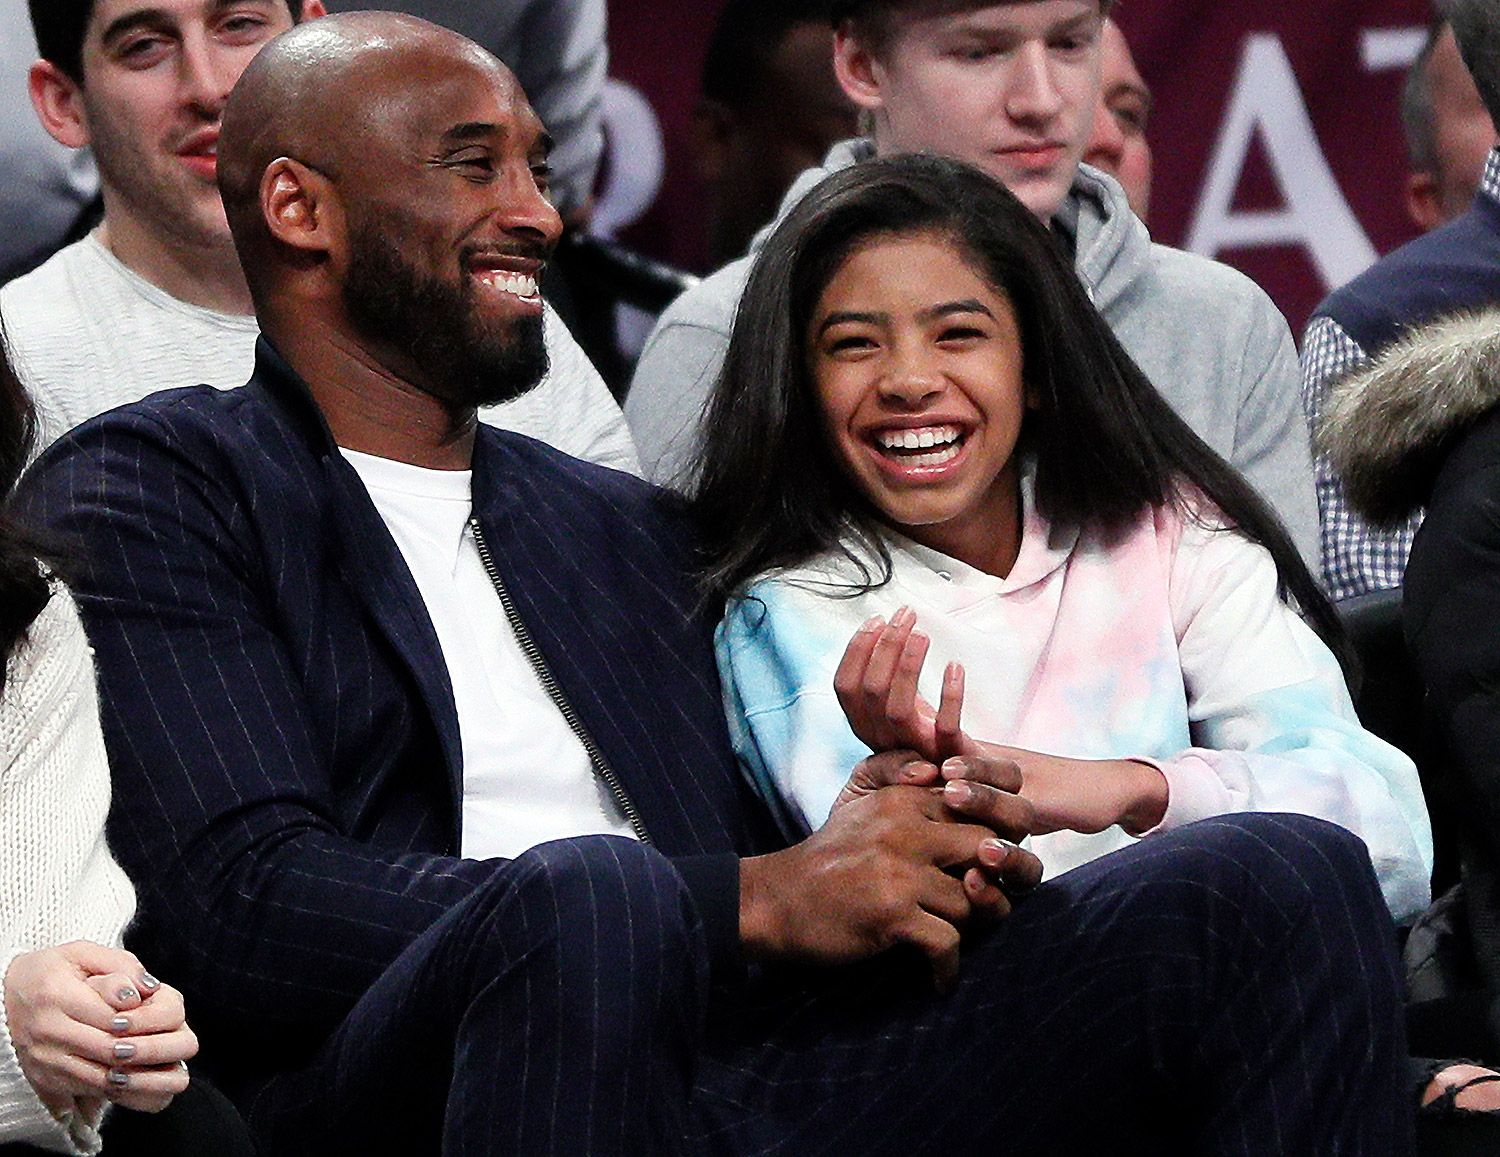 Kobe Bryant Credits Daughter Gigi with Getting Him to Watch the NBA Again During Retirement